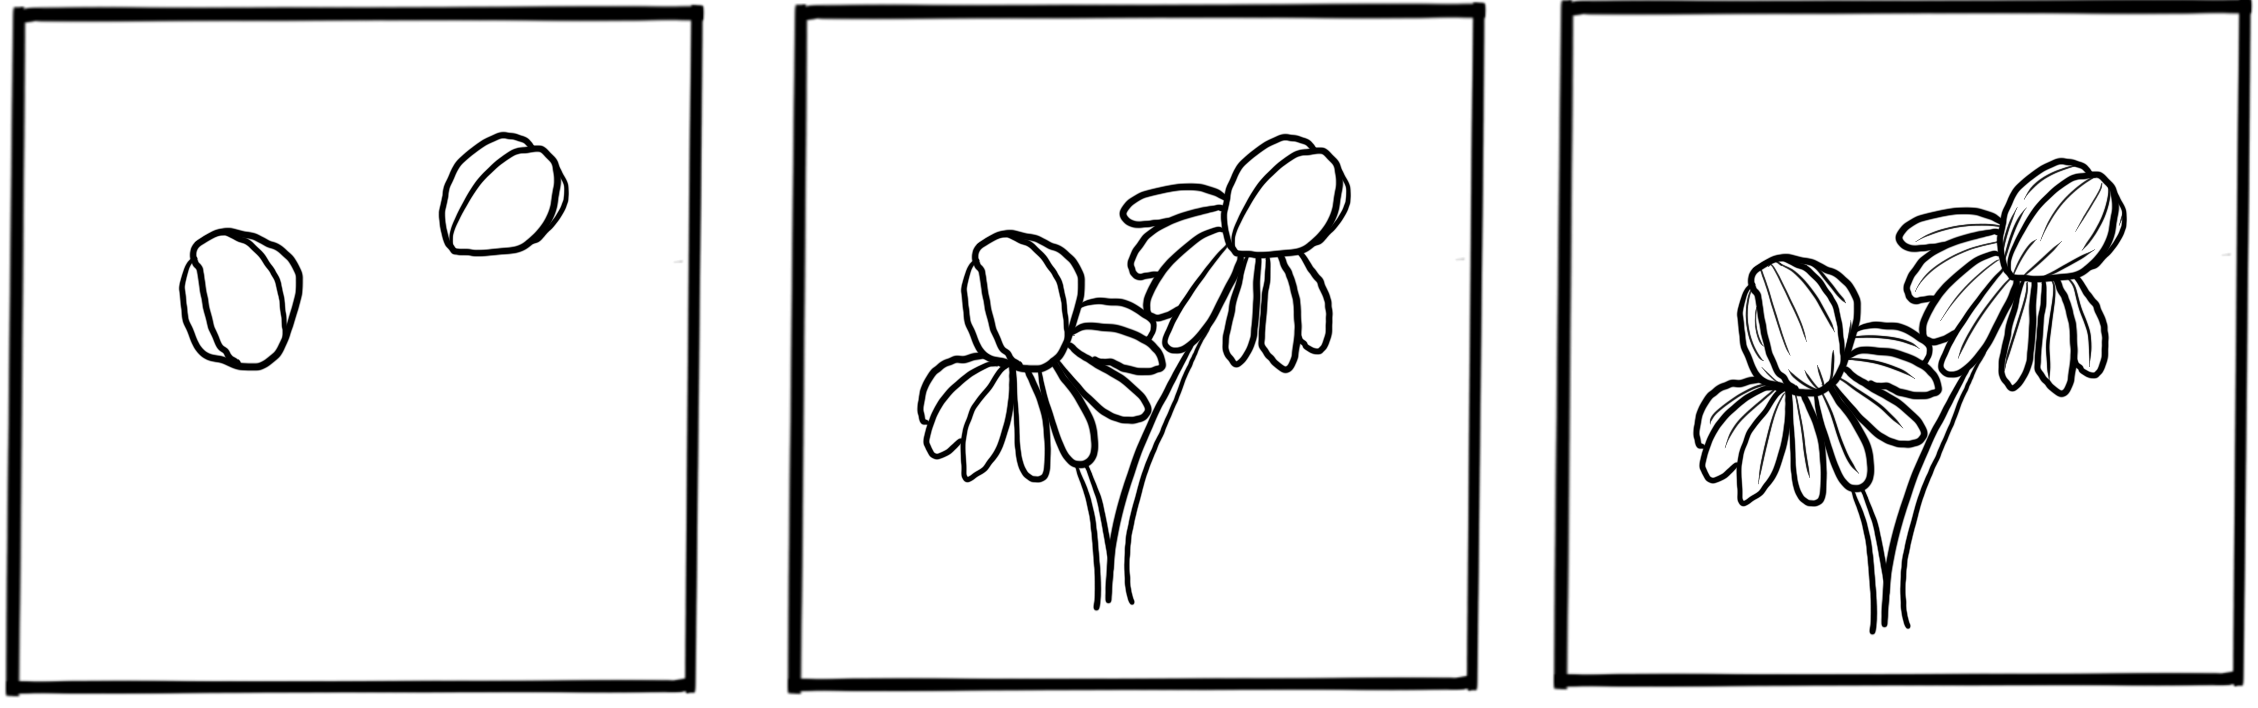 how to draw a winter aconite flower